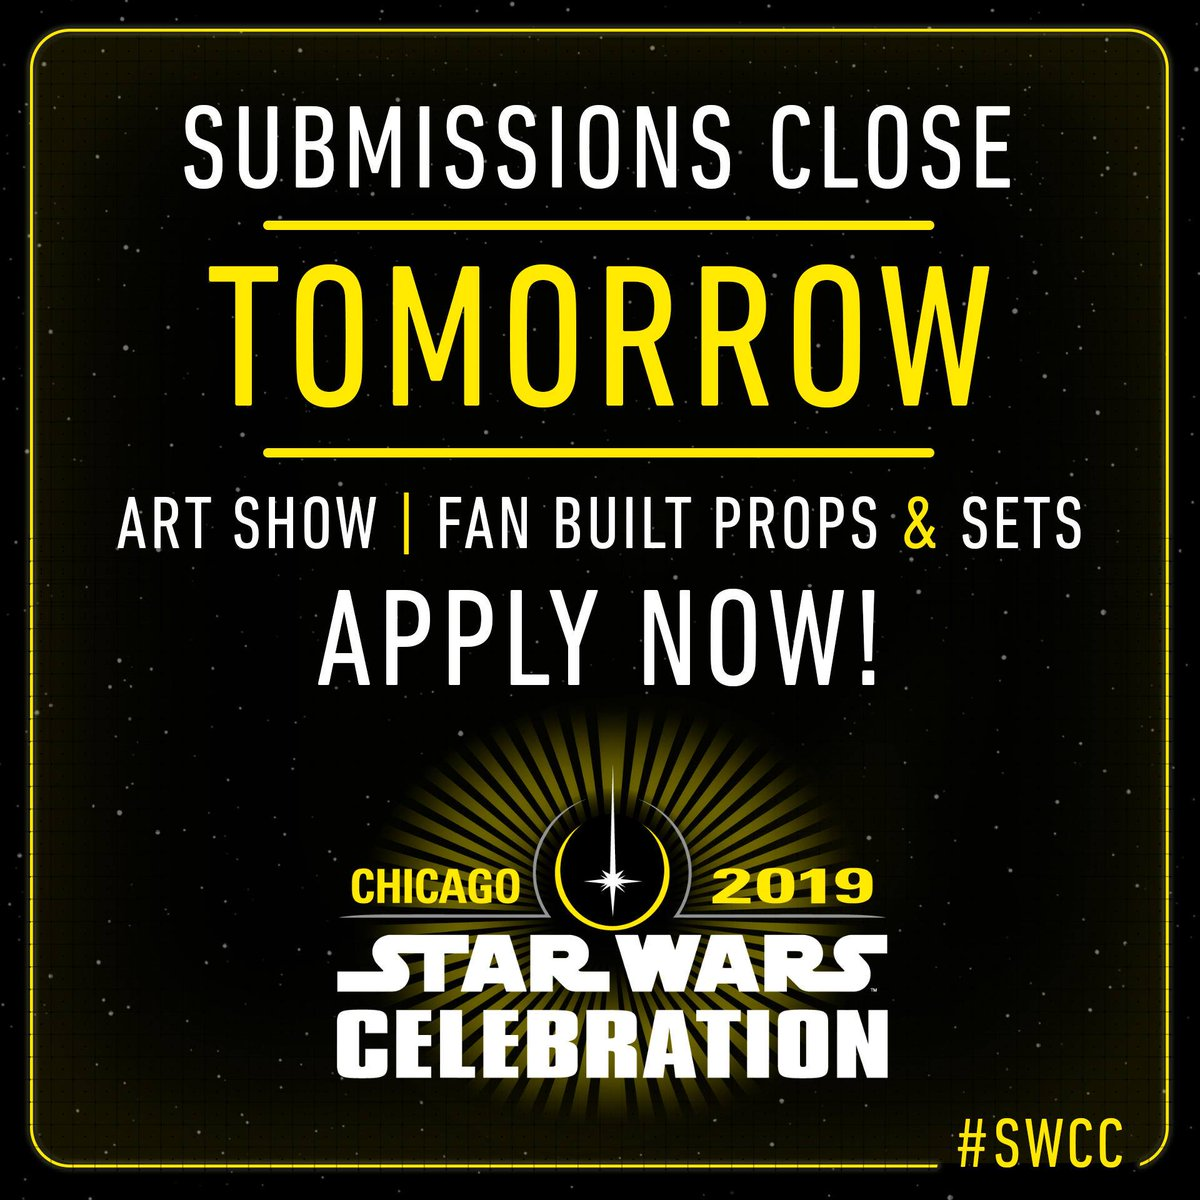 We&#39;d love to see your work on display at #StarWarsCelebration. Apply today! #SWCC  Art Show:  http:// strw.rs/6007DvE7W  &nbsp;    Props and Sets:  http:// strw.rs/6000DvEC6  &nbsp;  <br>http://pic.twitter.com/oV5dpFJpTP